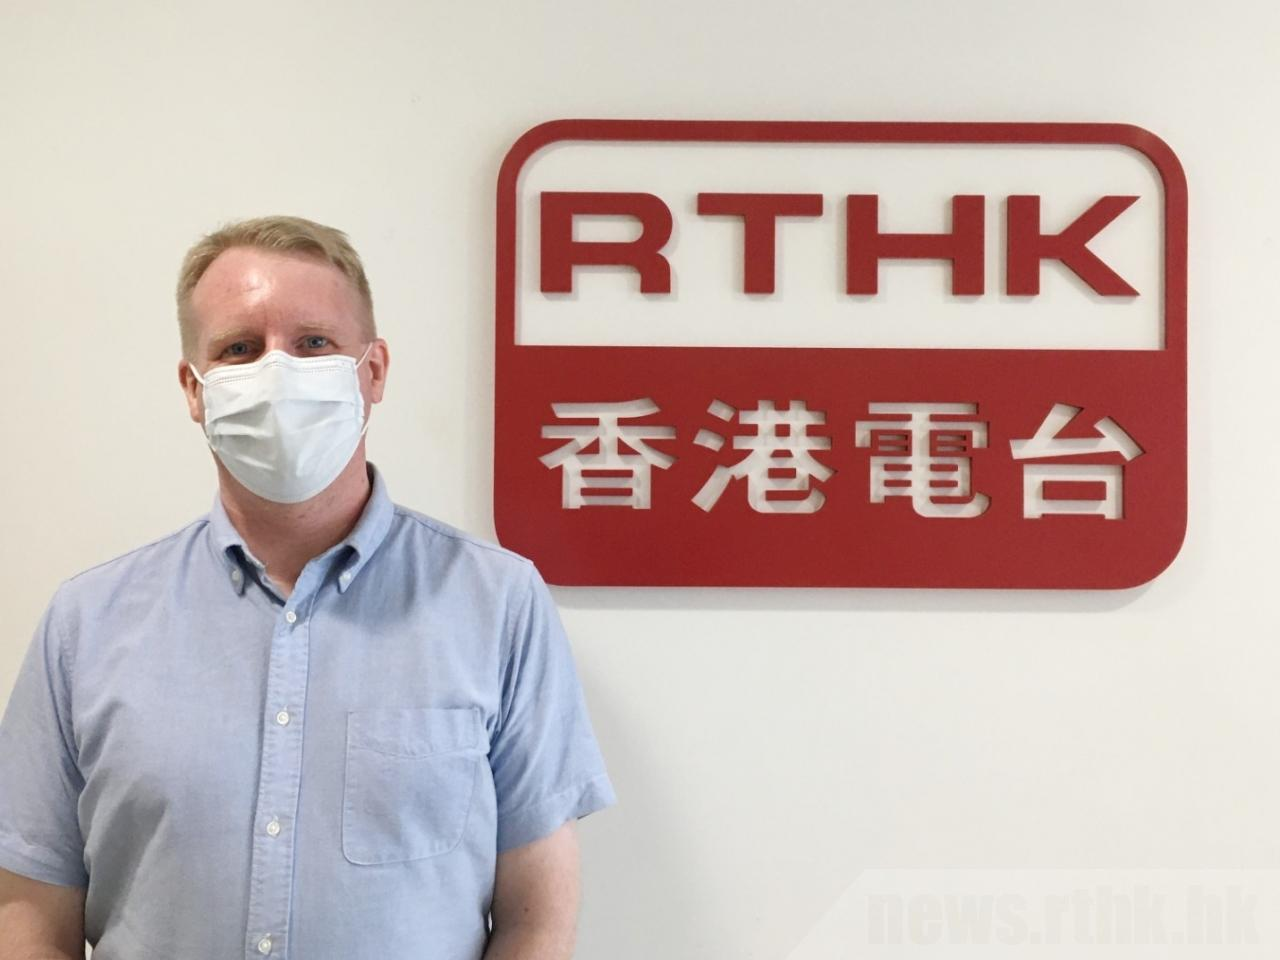 Professor Benjamin Cowling from the University of Hong Kong's School of Public Health says packaging isn't a major route of transmission. File photo: RTHK